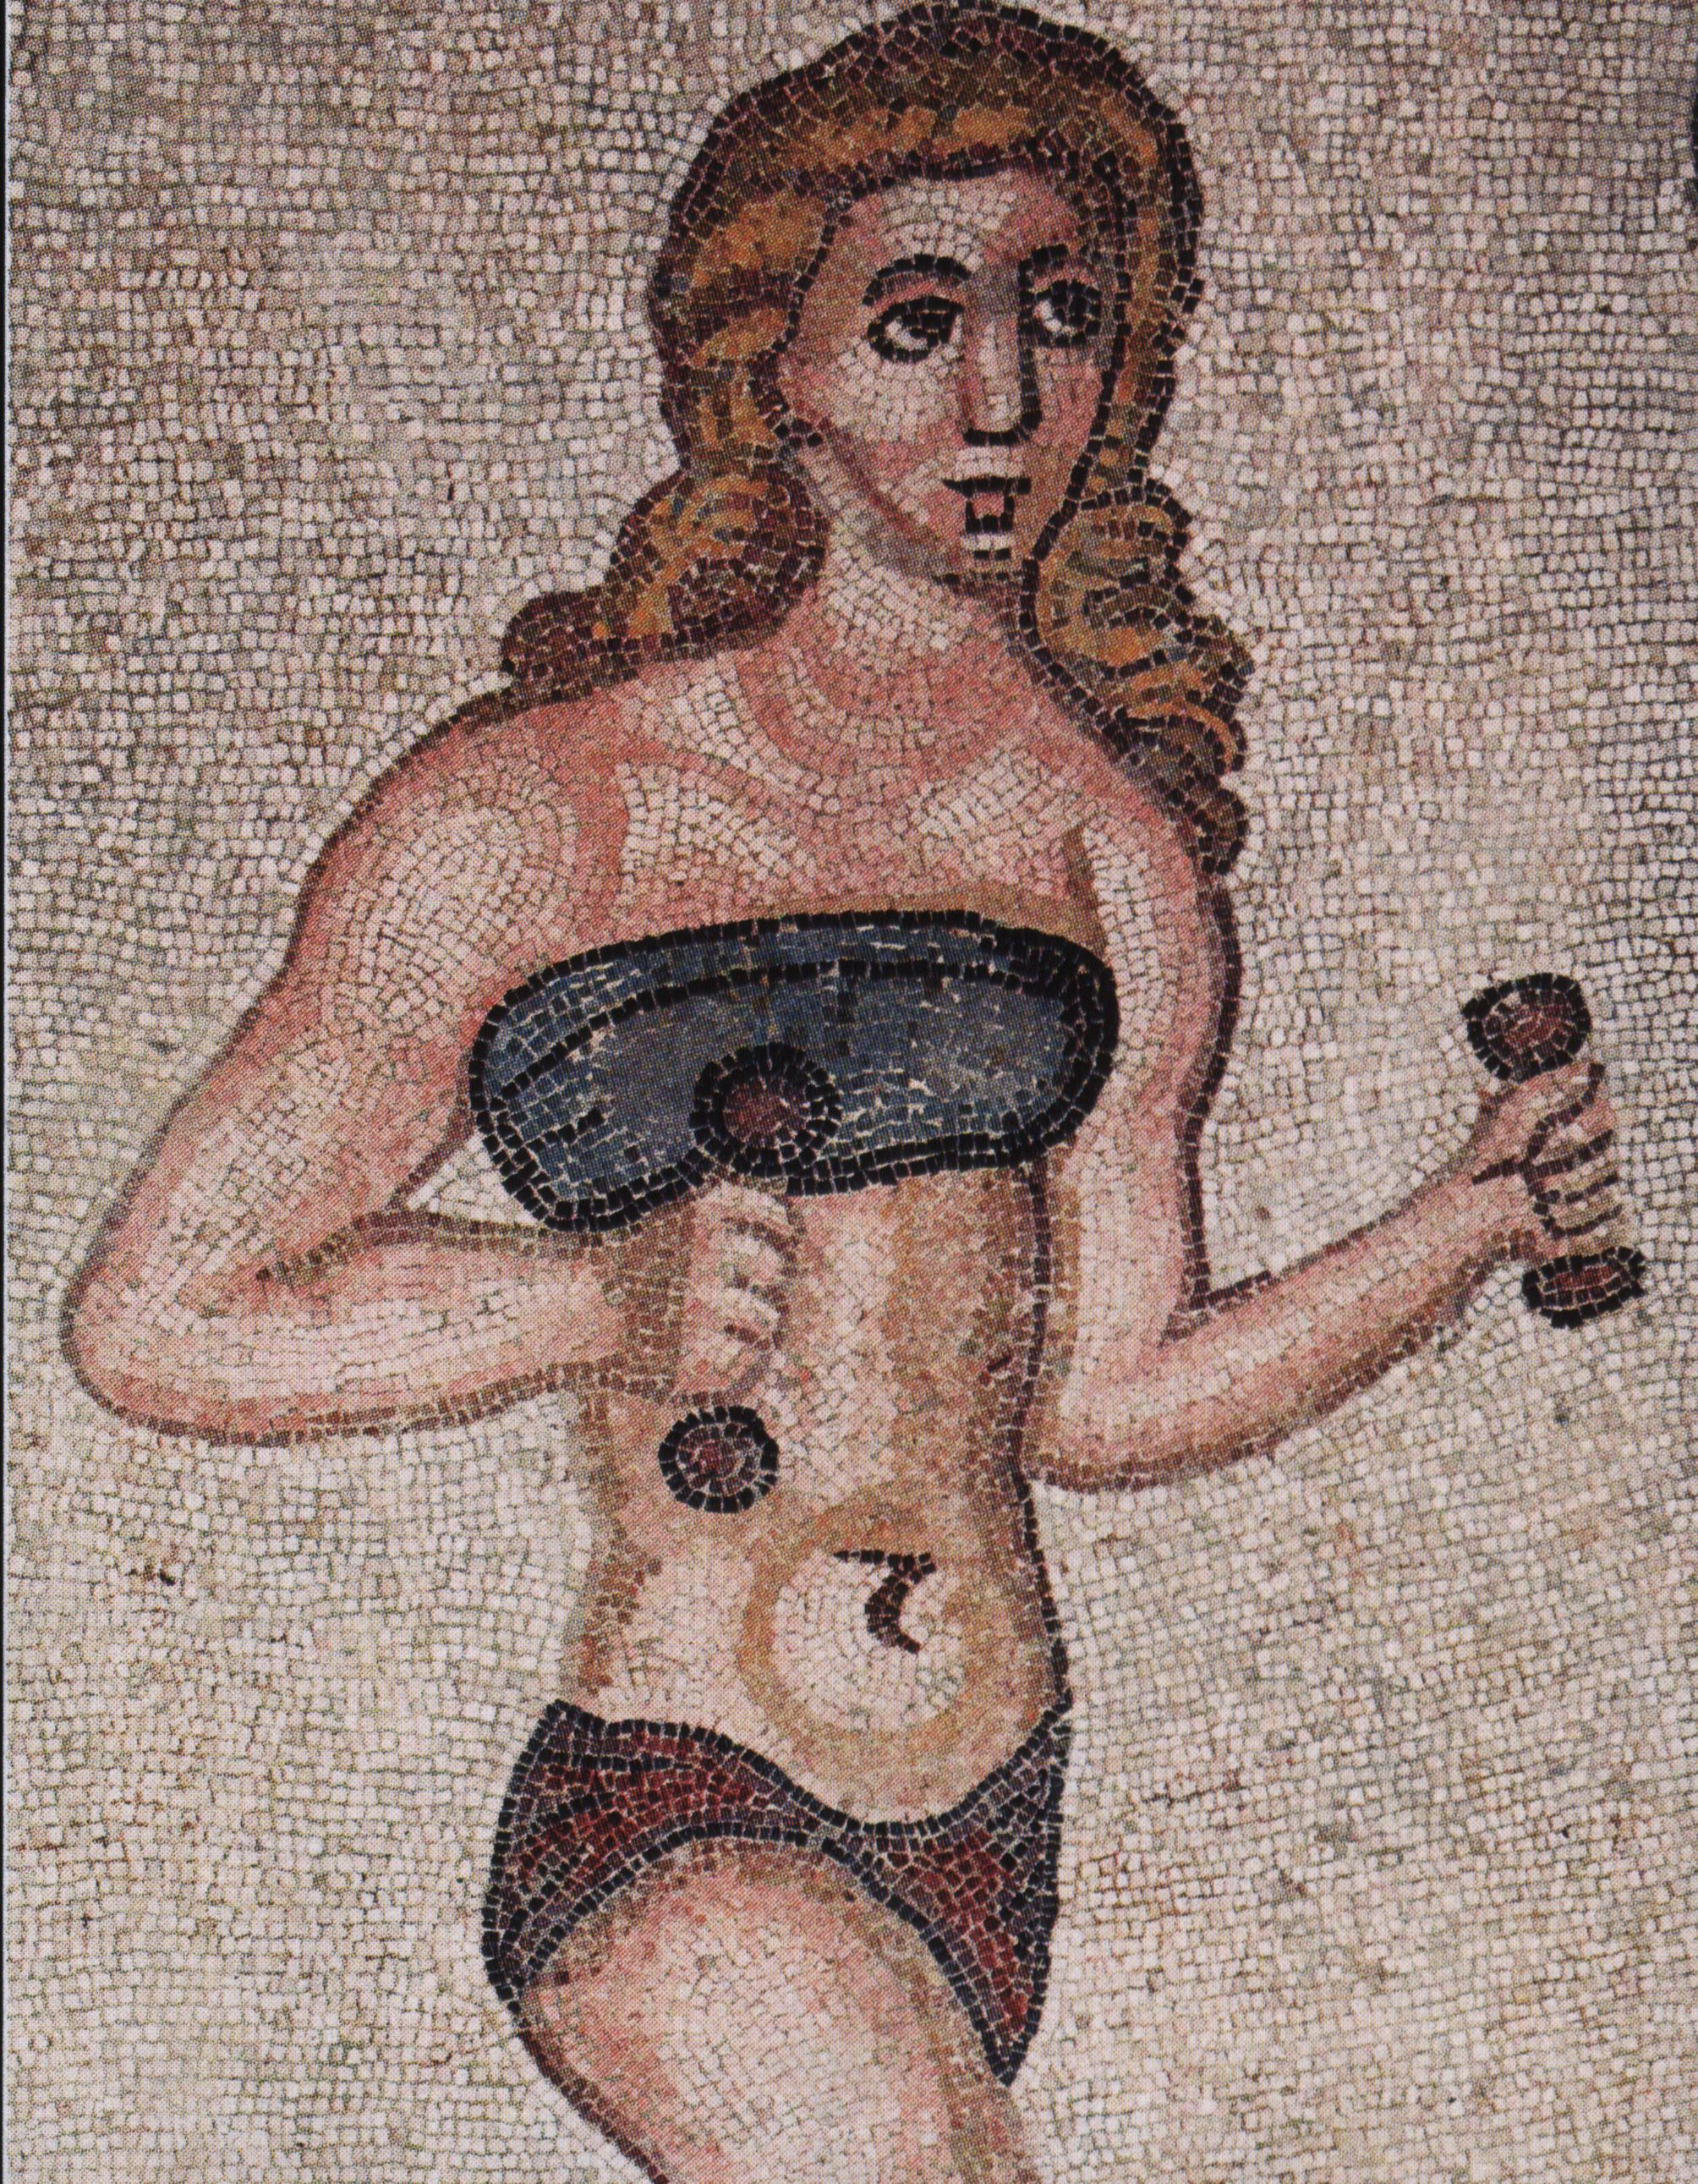 http://upload.wikimedia.org/wikipedia/commons/4/46/Villa_del_Casale_-_mosaique_femme_sport.jpeg